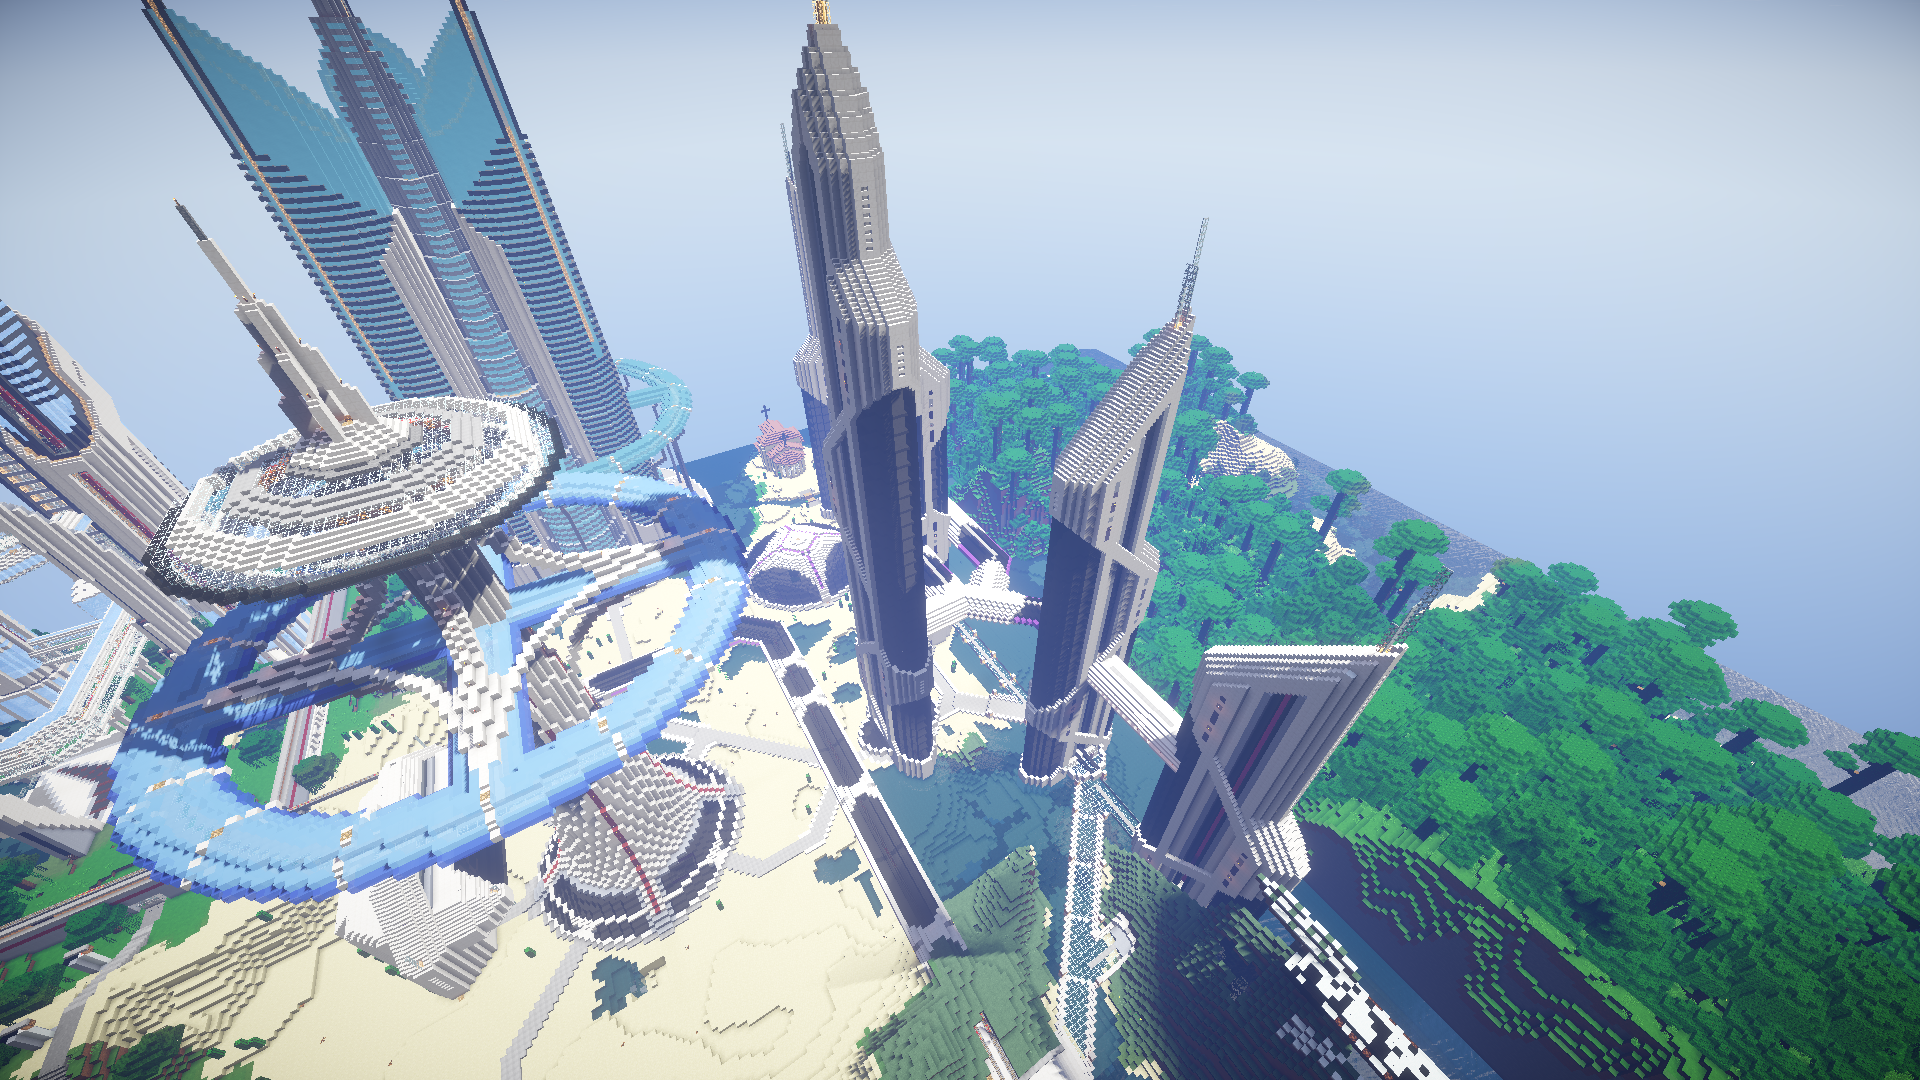 minecraft map ville future city 3.0 vu par en haut